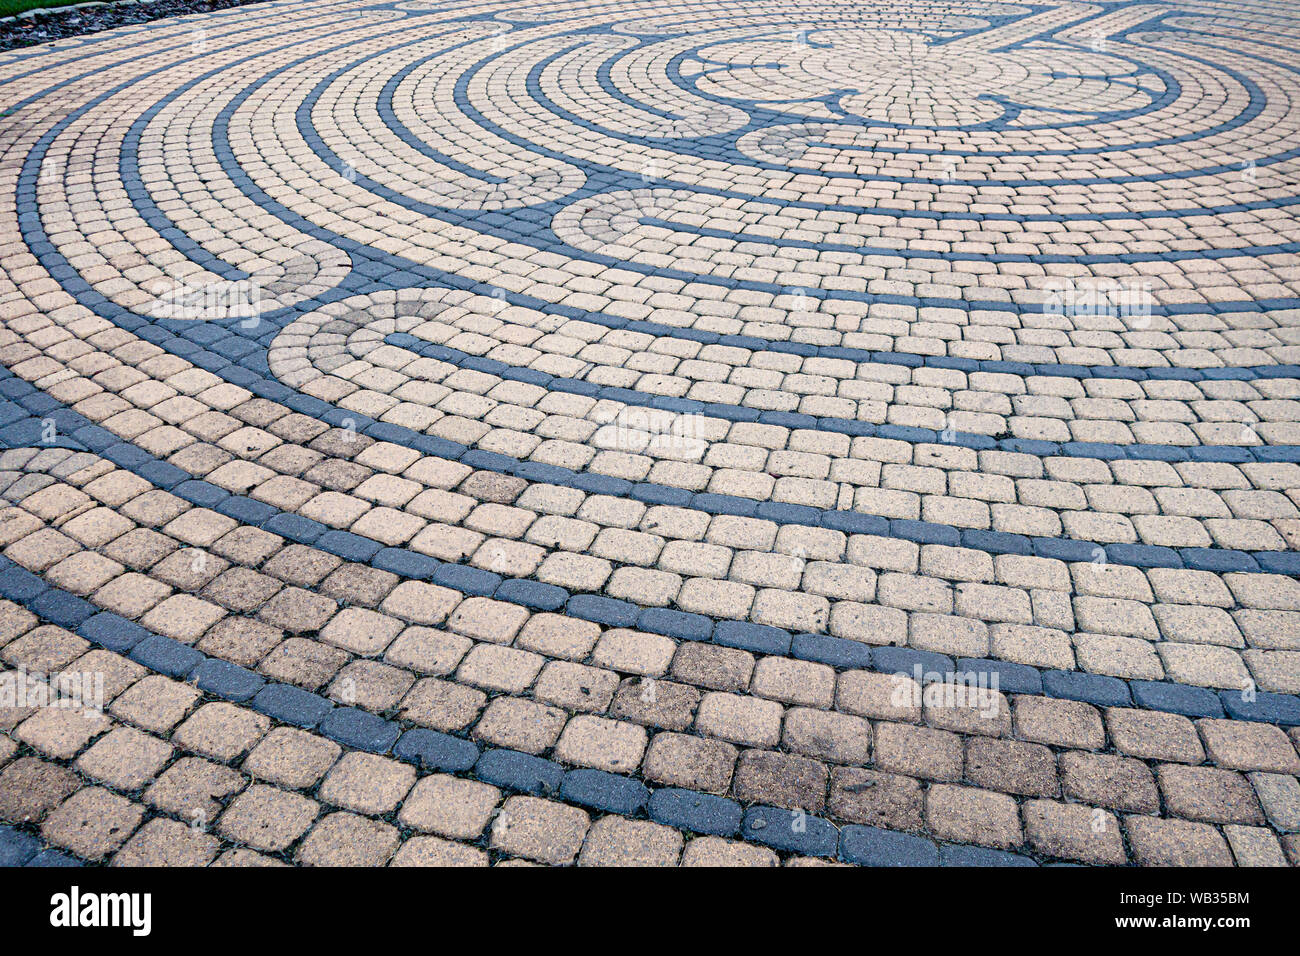 A Chartres Replica (medieval) style stone labyrinth located at the Western PA Conference United Methodist Church in Cranberry Township, Pennsylvania Stock Photo